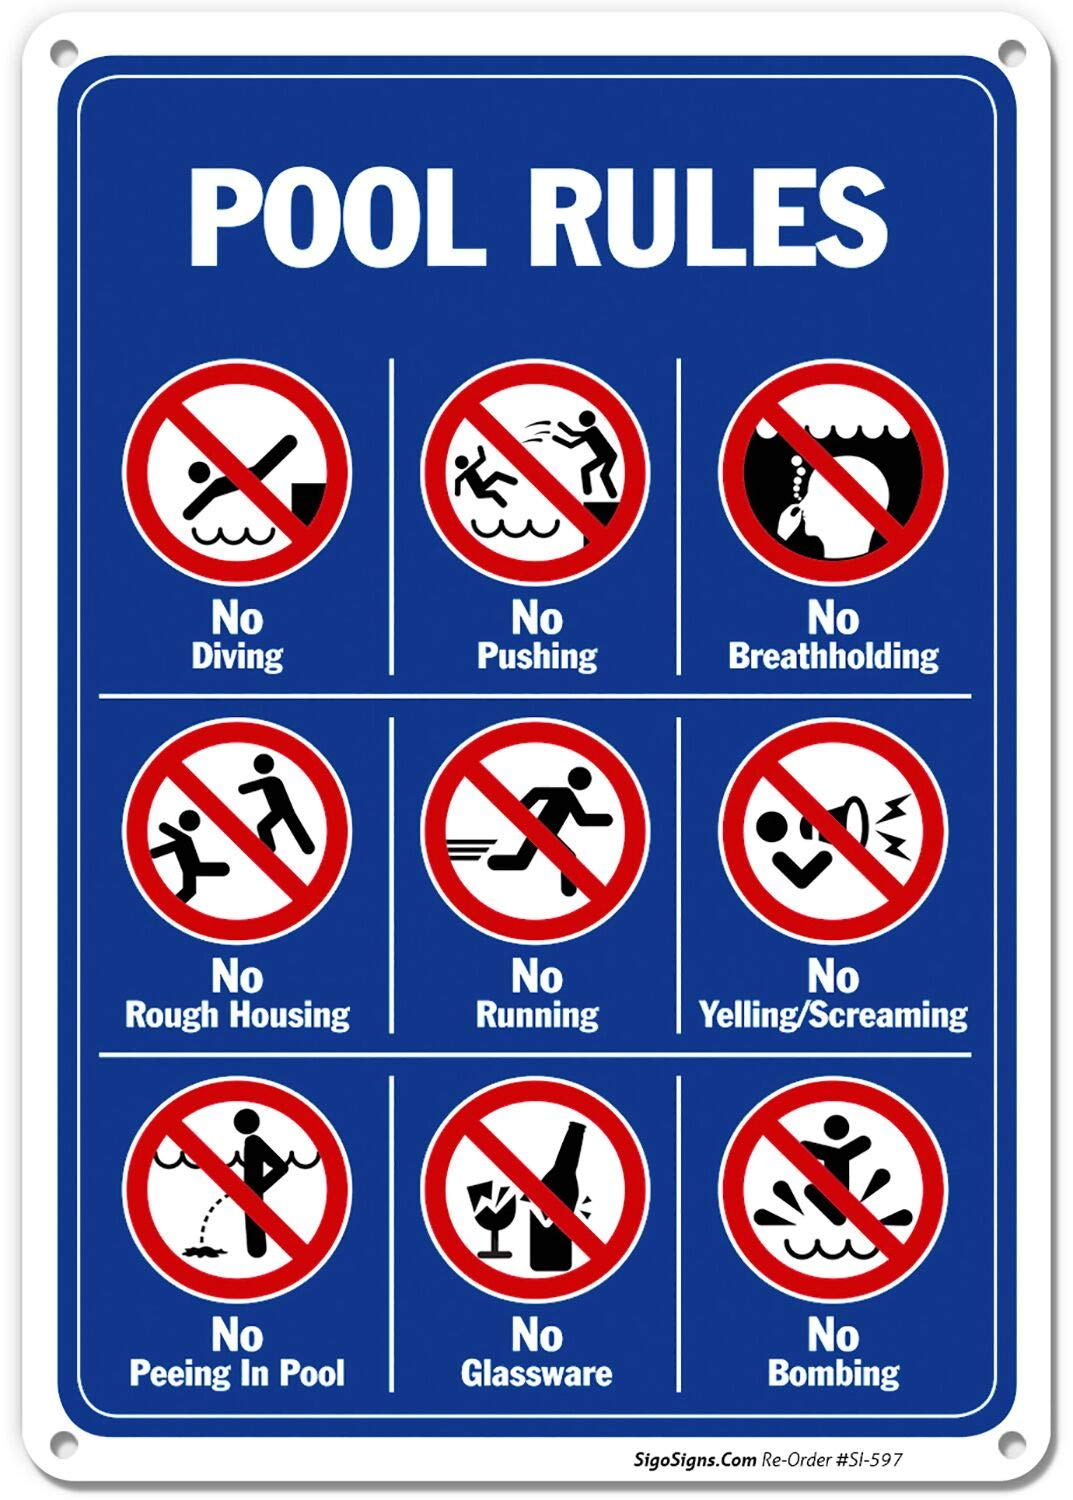 Pool Rules Sign, No Diving No Pushing No Running No Peeing in Pool 10x14 Rust Free,40 Aluminum UV Printed, Easy to Mount Weather Resistant Long Lasting Ink Made in USA by SIGO SIGNS